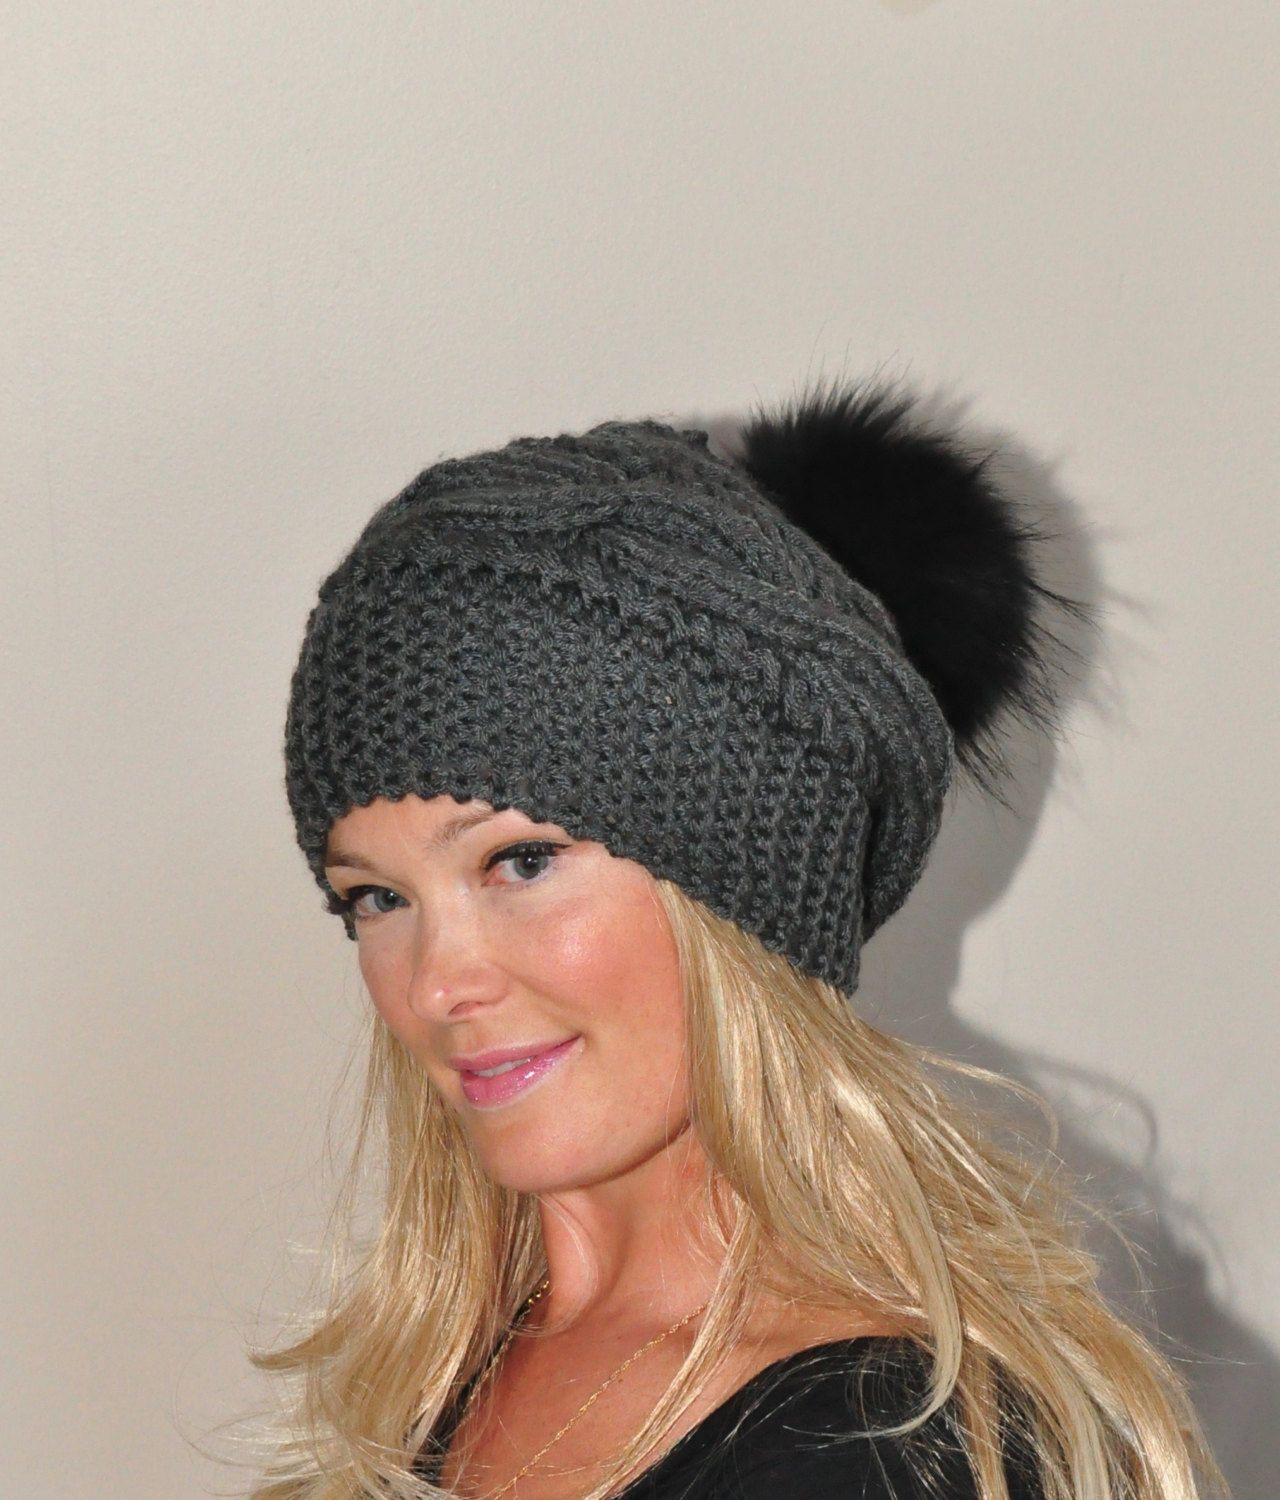 88255c1e0c4 Fur Pompom Hat Braid Knit Beanie Cable Hat Hand Knit Winter Women Hat  CHOOSE COLOR Dark Gray Chunky Christmas Gift by lucymir on Etsy